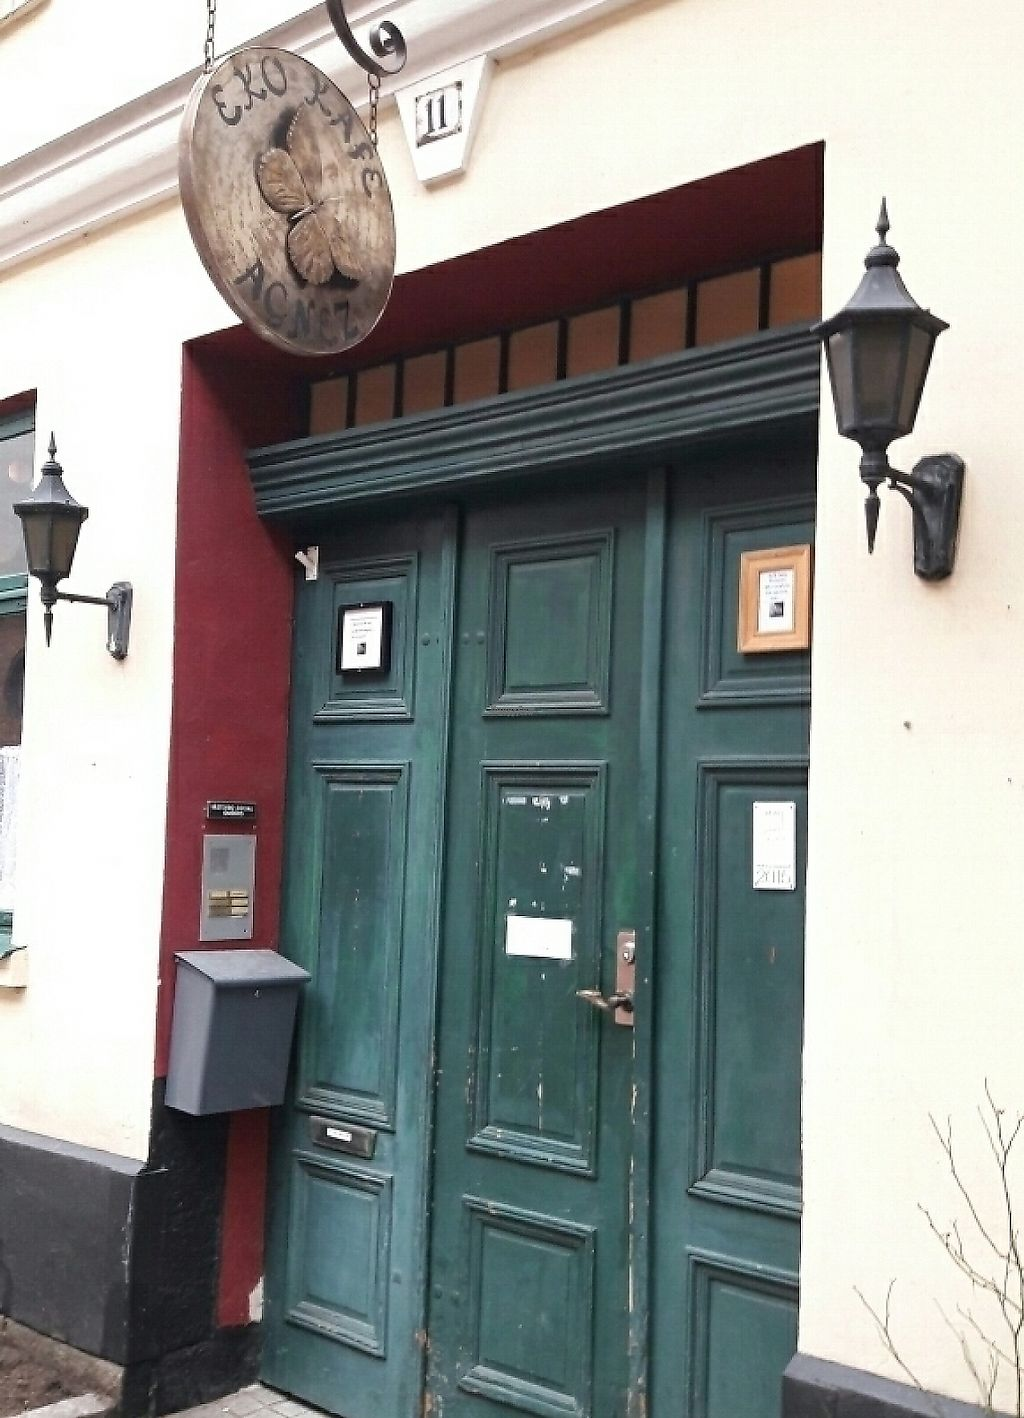 """Photo of Kafe Agnez  by <a href=""""/members/profile/piffelina"""">piffelina</a> <br/>You will find Agnez behind these doors <br/> March 25, 2017  - <a href='/contact/abuse/image/26130/244164'>Report</a>"""